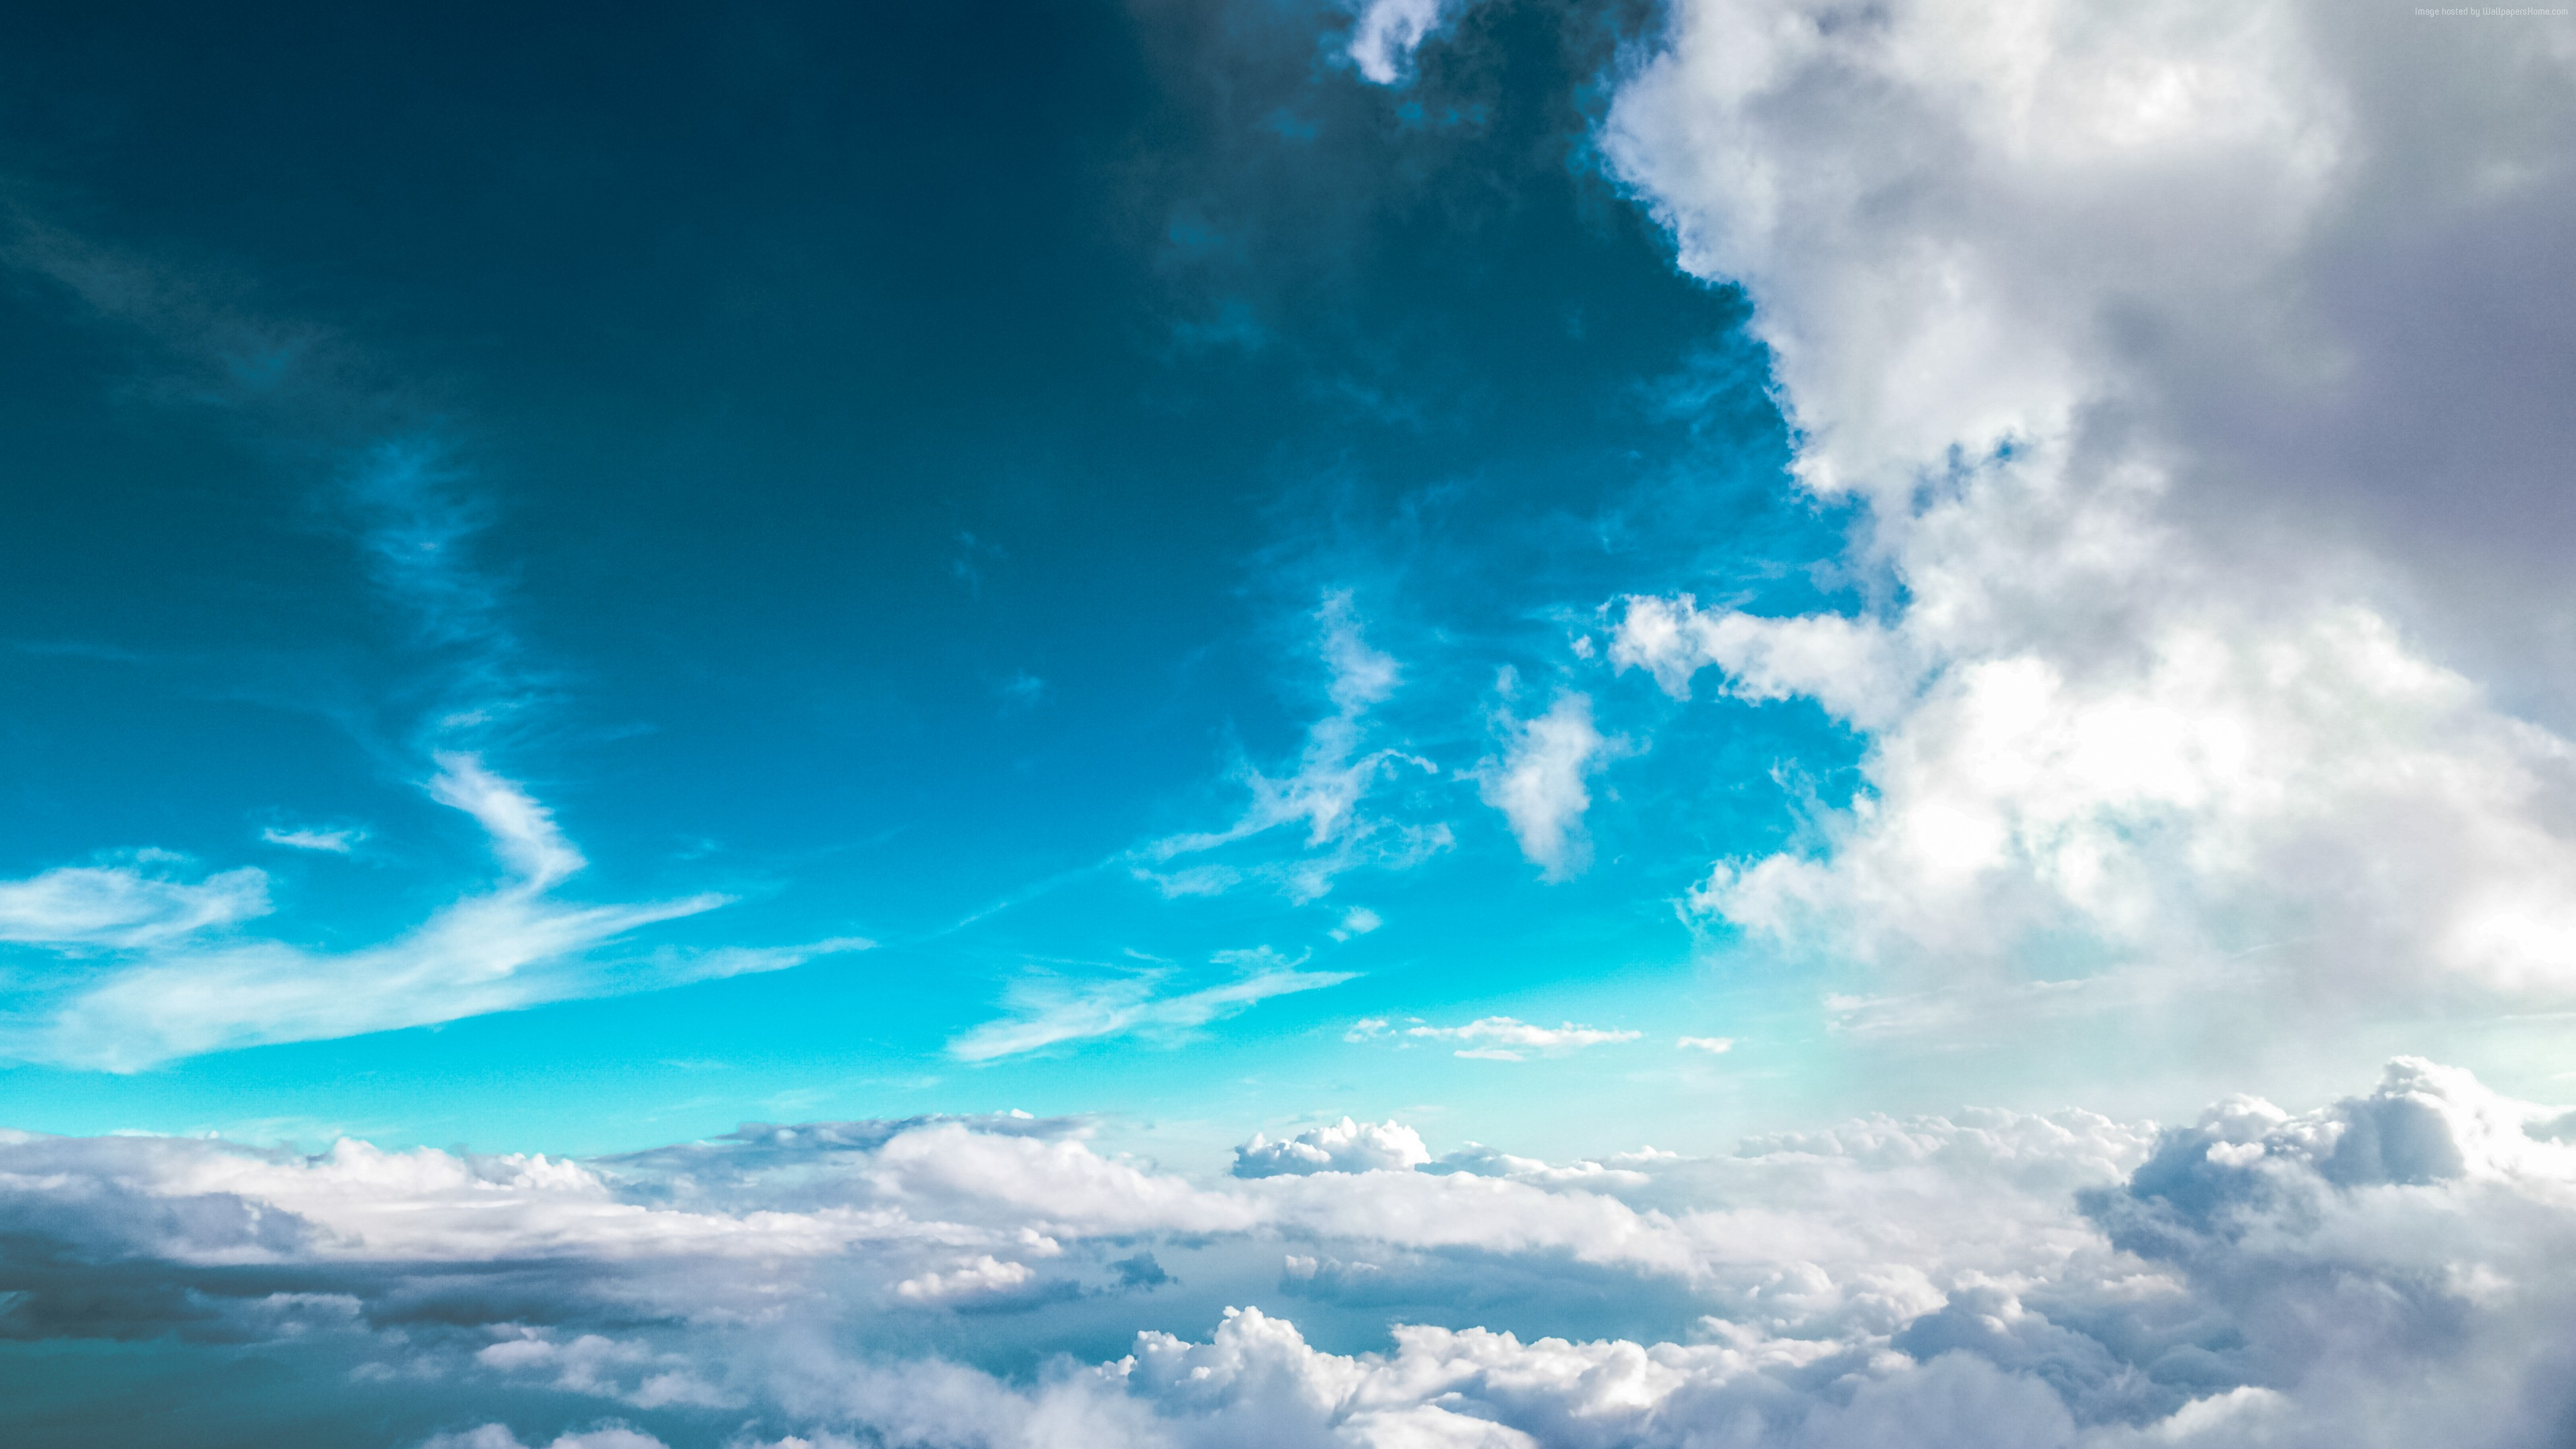 Stock Images clouds, sky, 5k, Stock Images